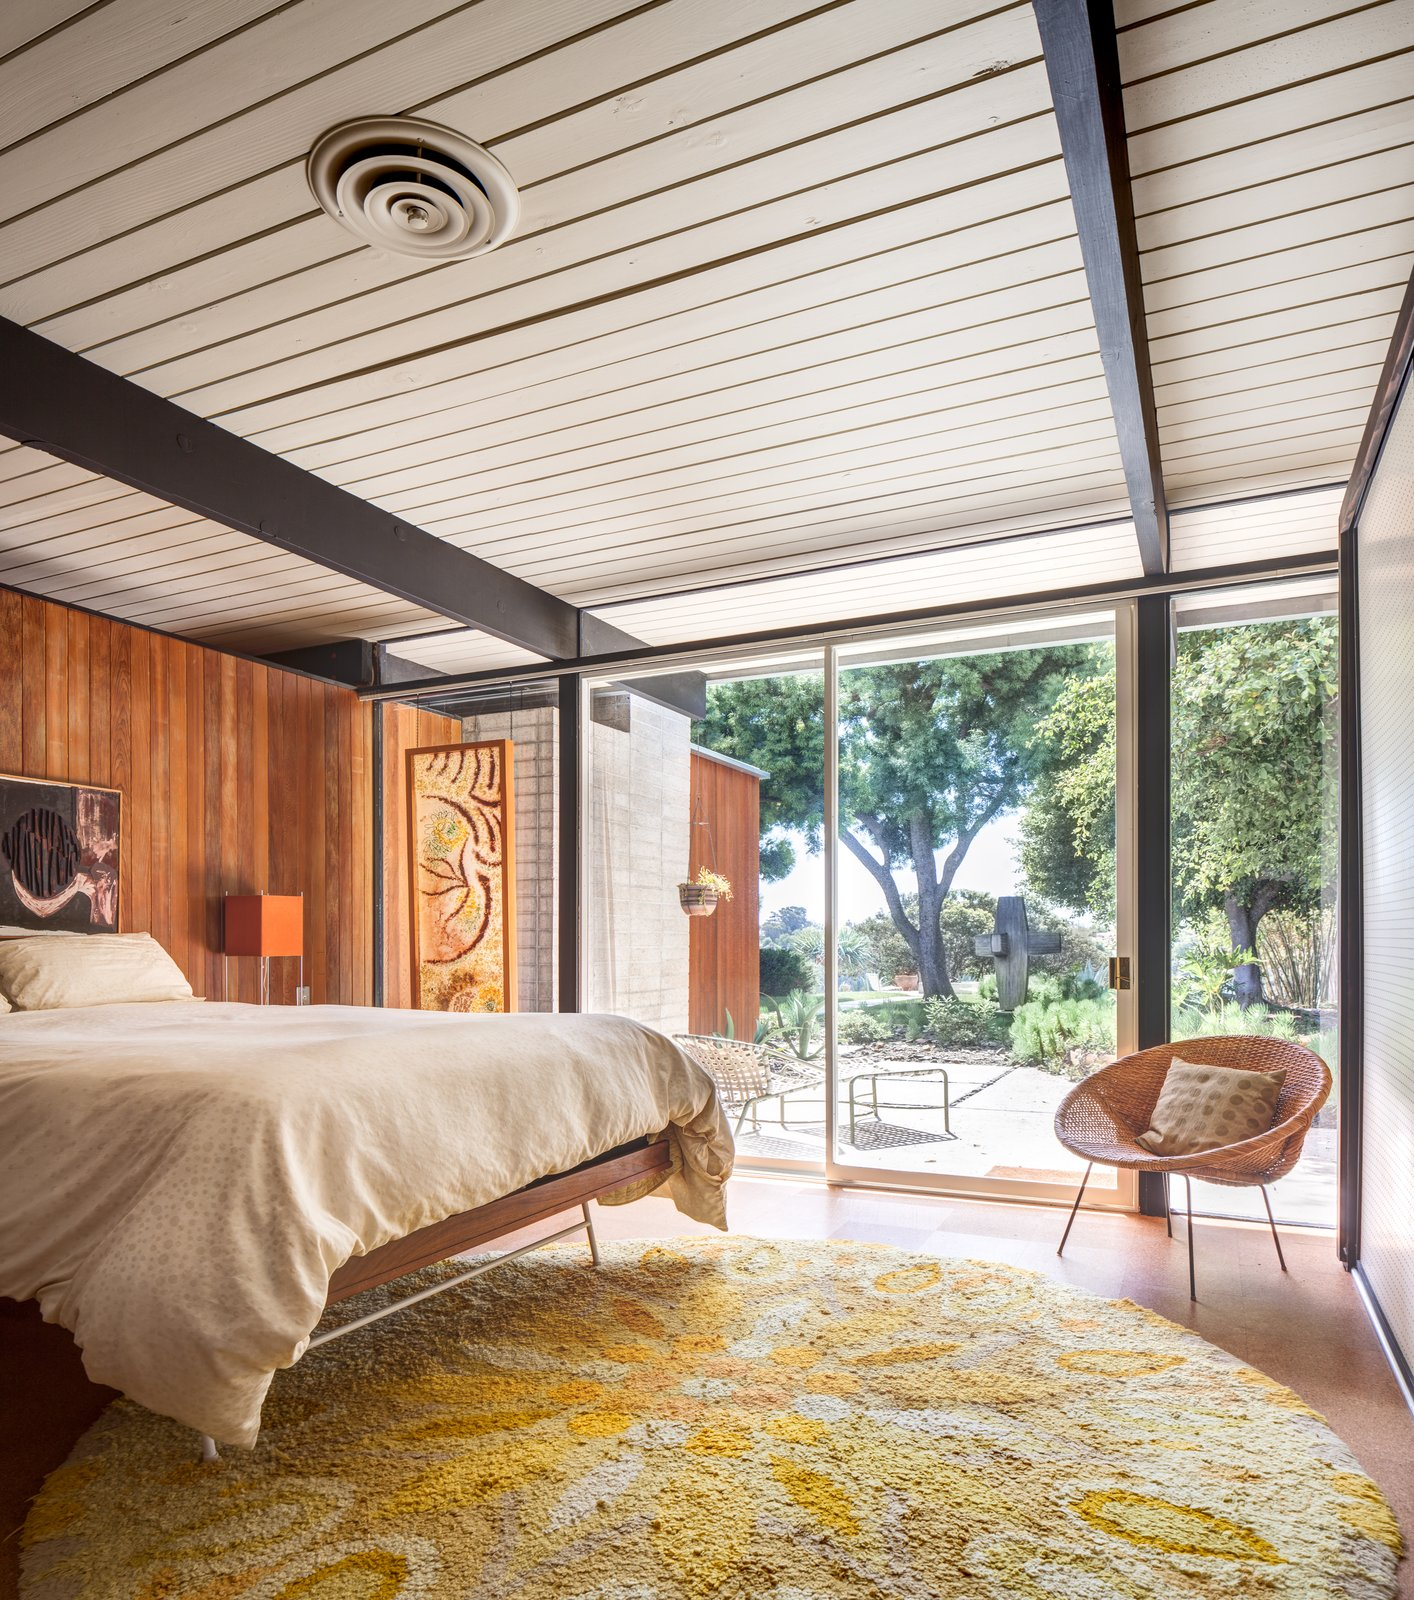 Bedroom, Bed, Table Lighting, Chair, and Cork Floor  Photo 7 of 10 in A Stunningly Restored Midcentury by Case Study Architect Craig Ellwood Asks $800K in San Diego